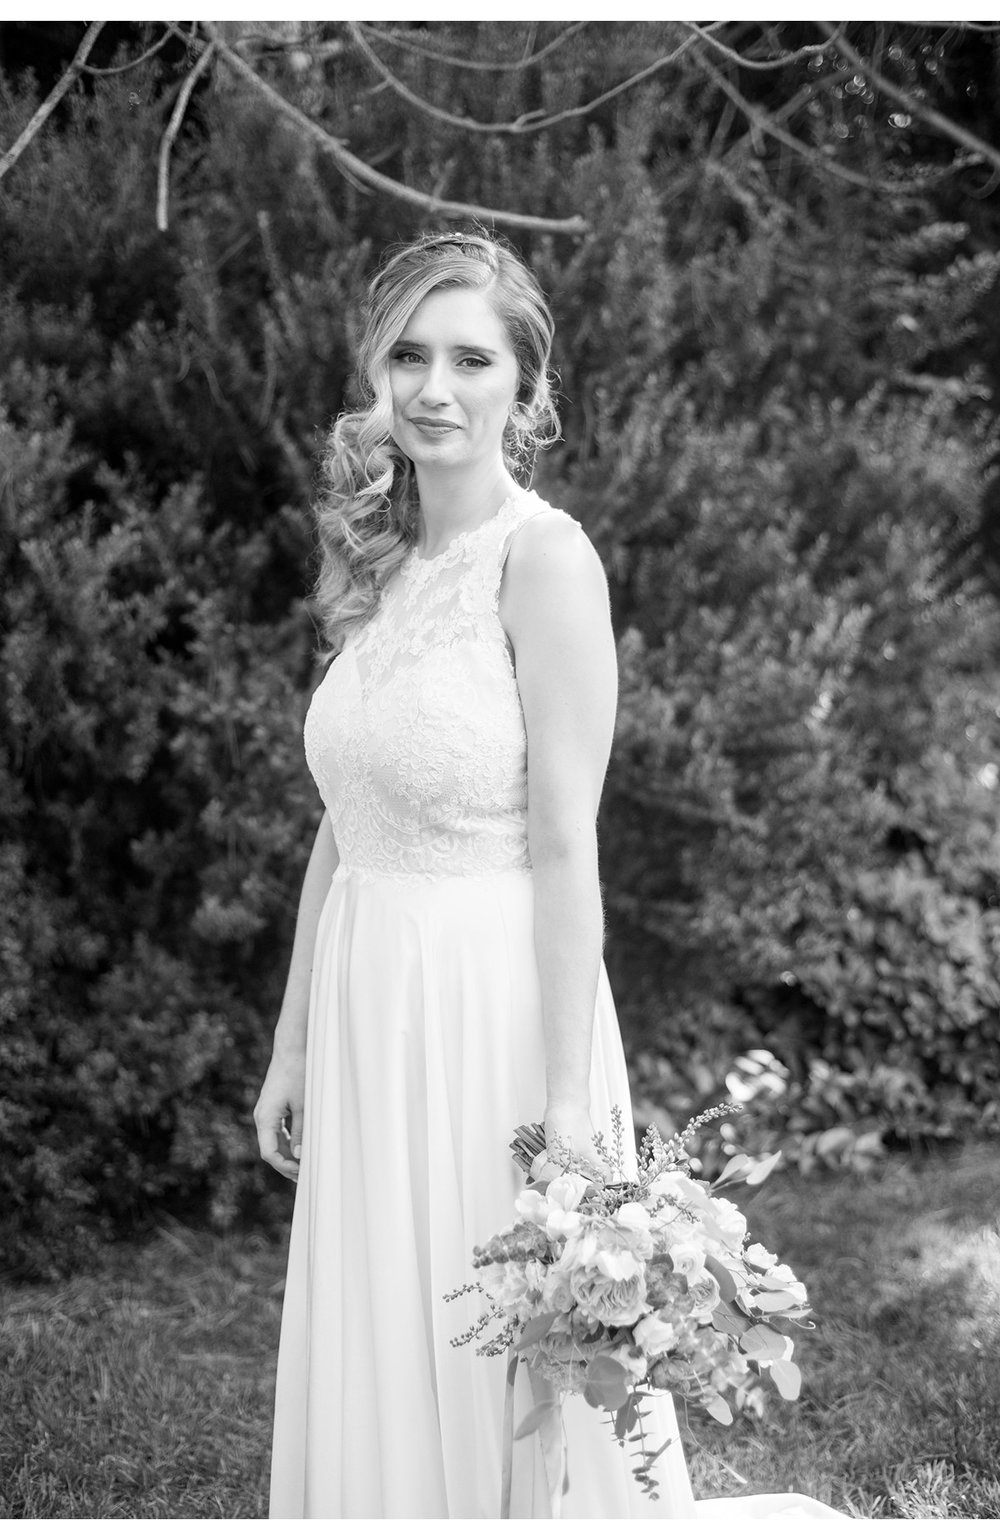 Black and white portrait of bride holding bouquet